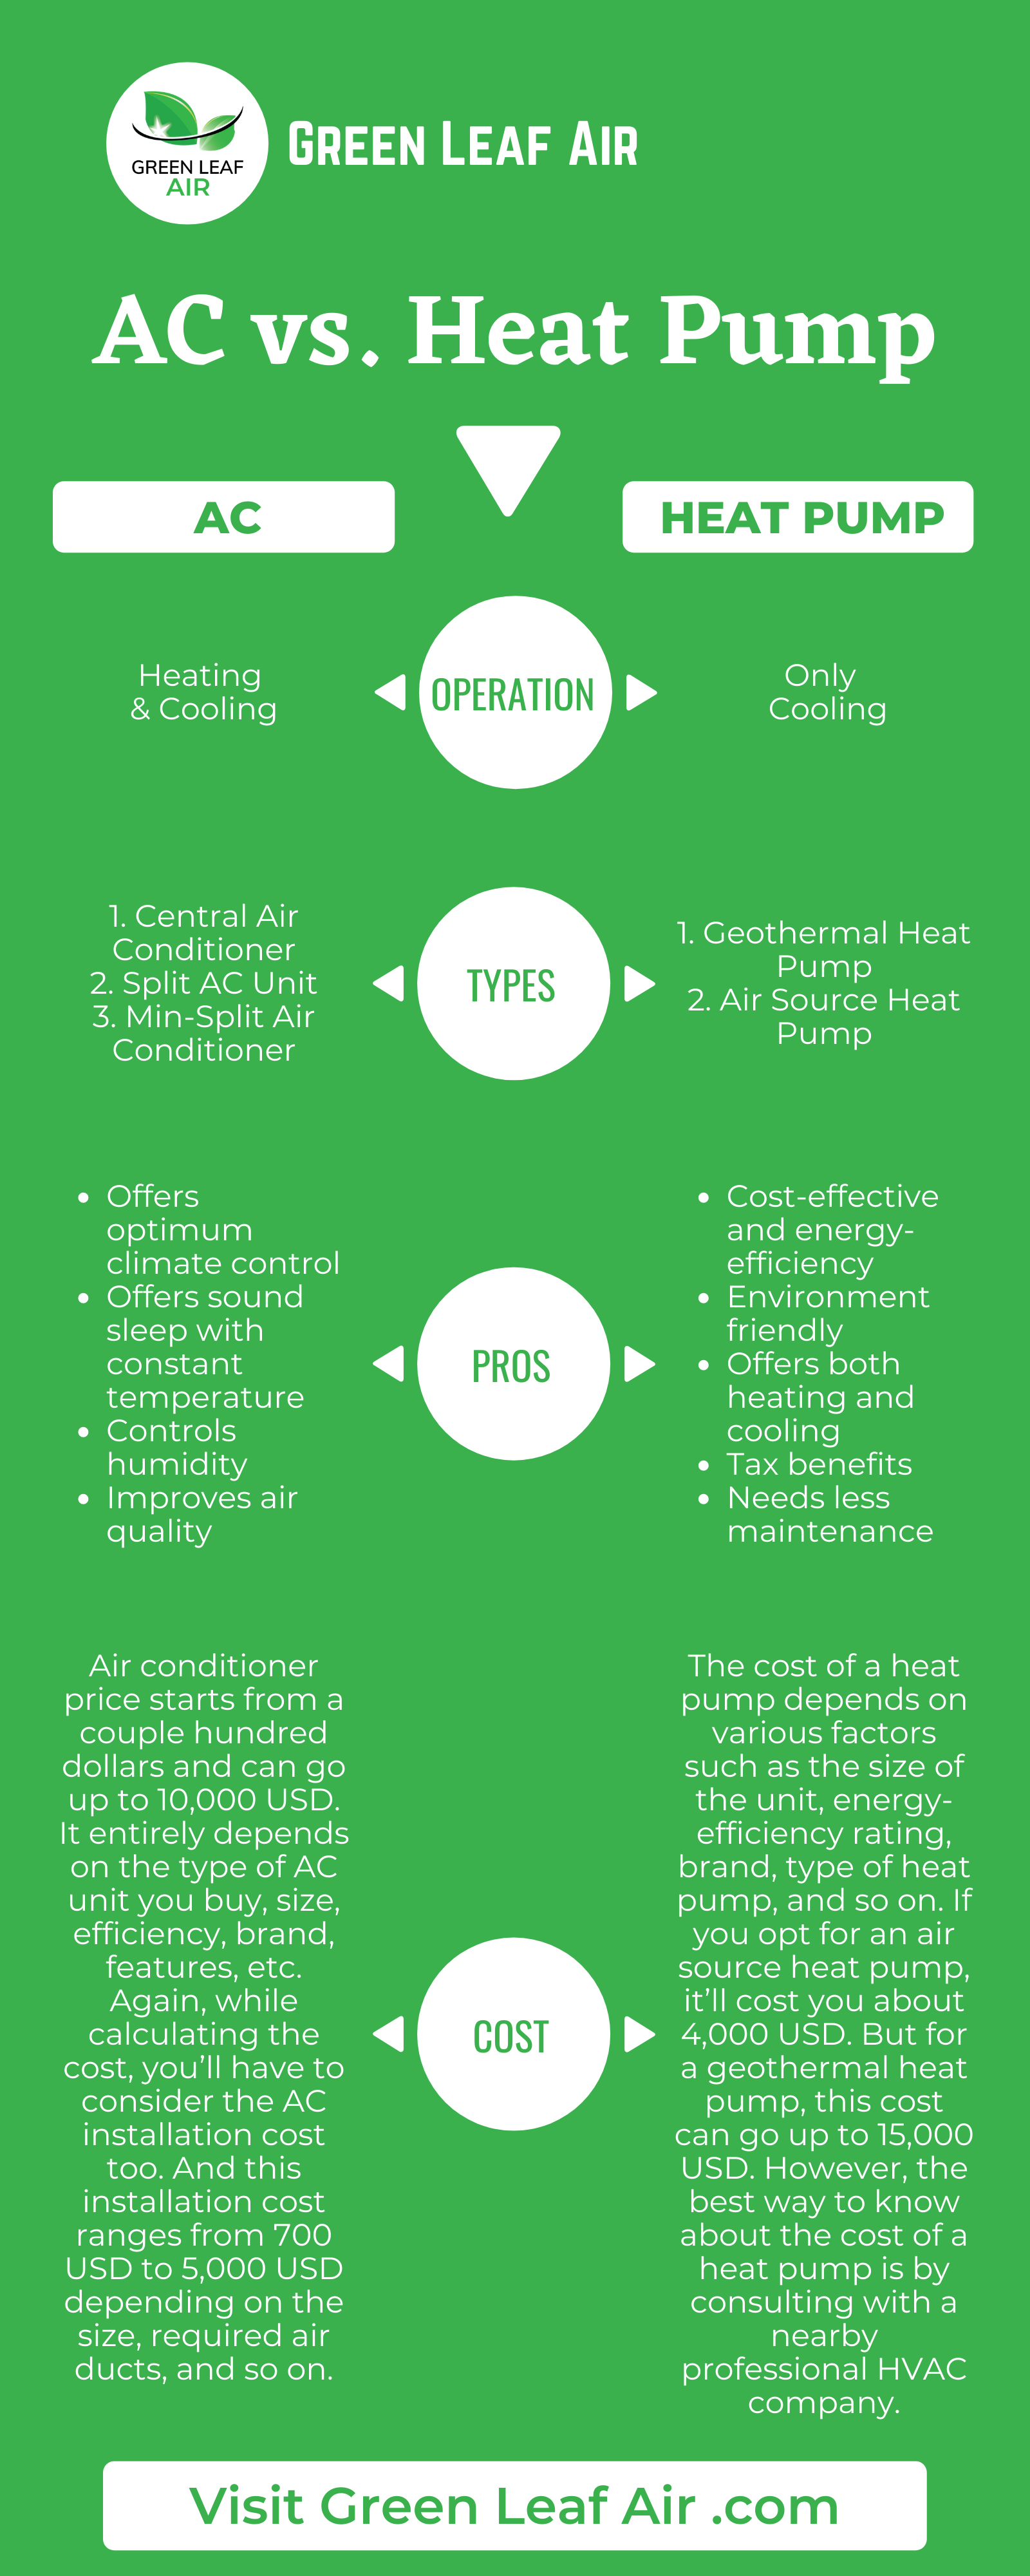 AC vs Heat Pump: The Differences